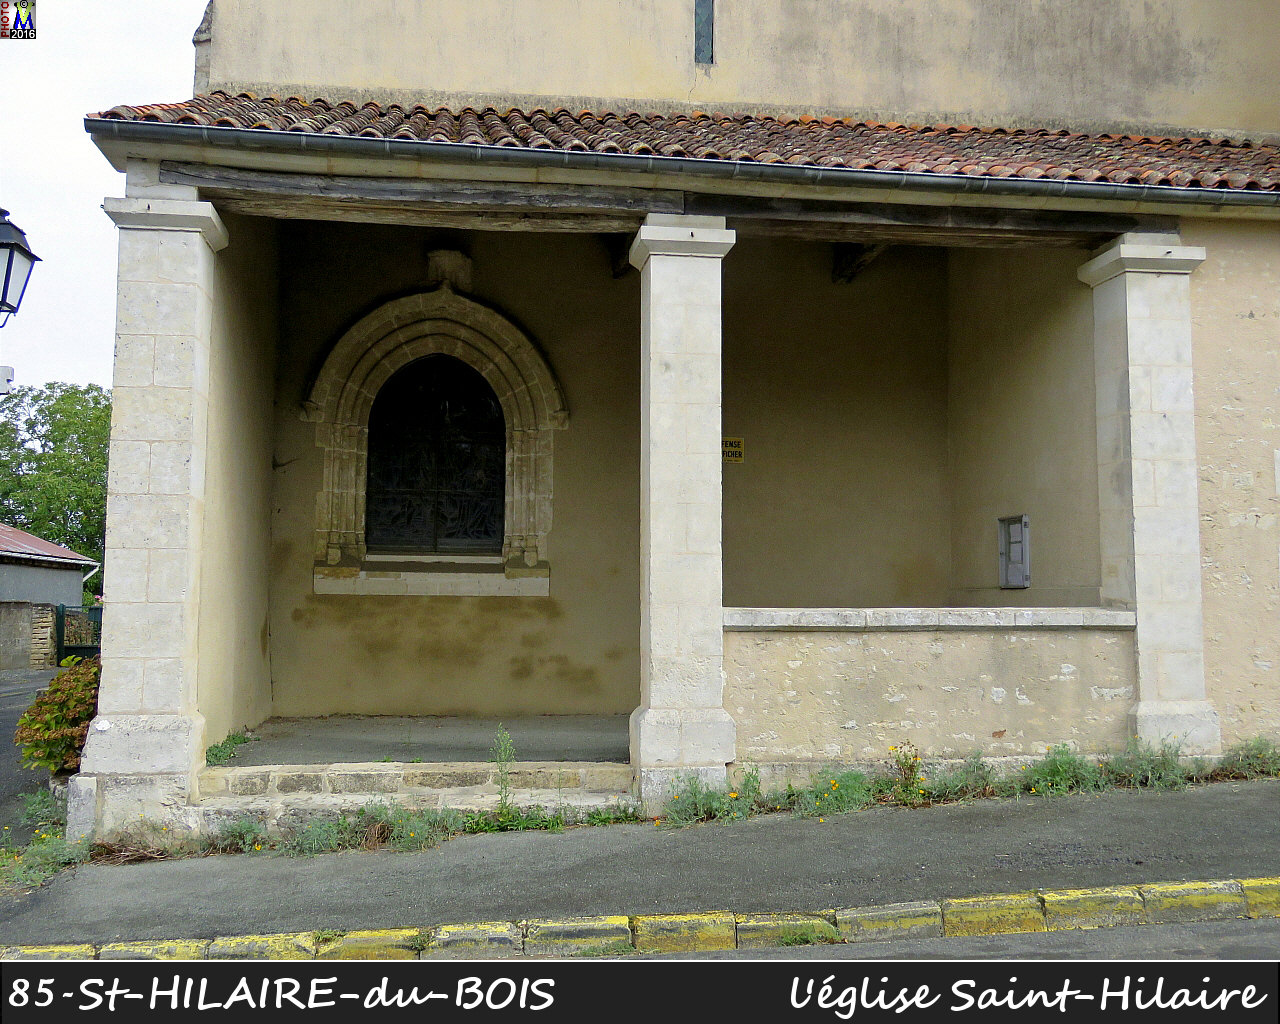 85CAILLERE-StHILAIRE-HILAIRE_eglise_1010.jpg